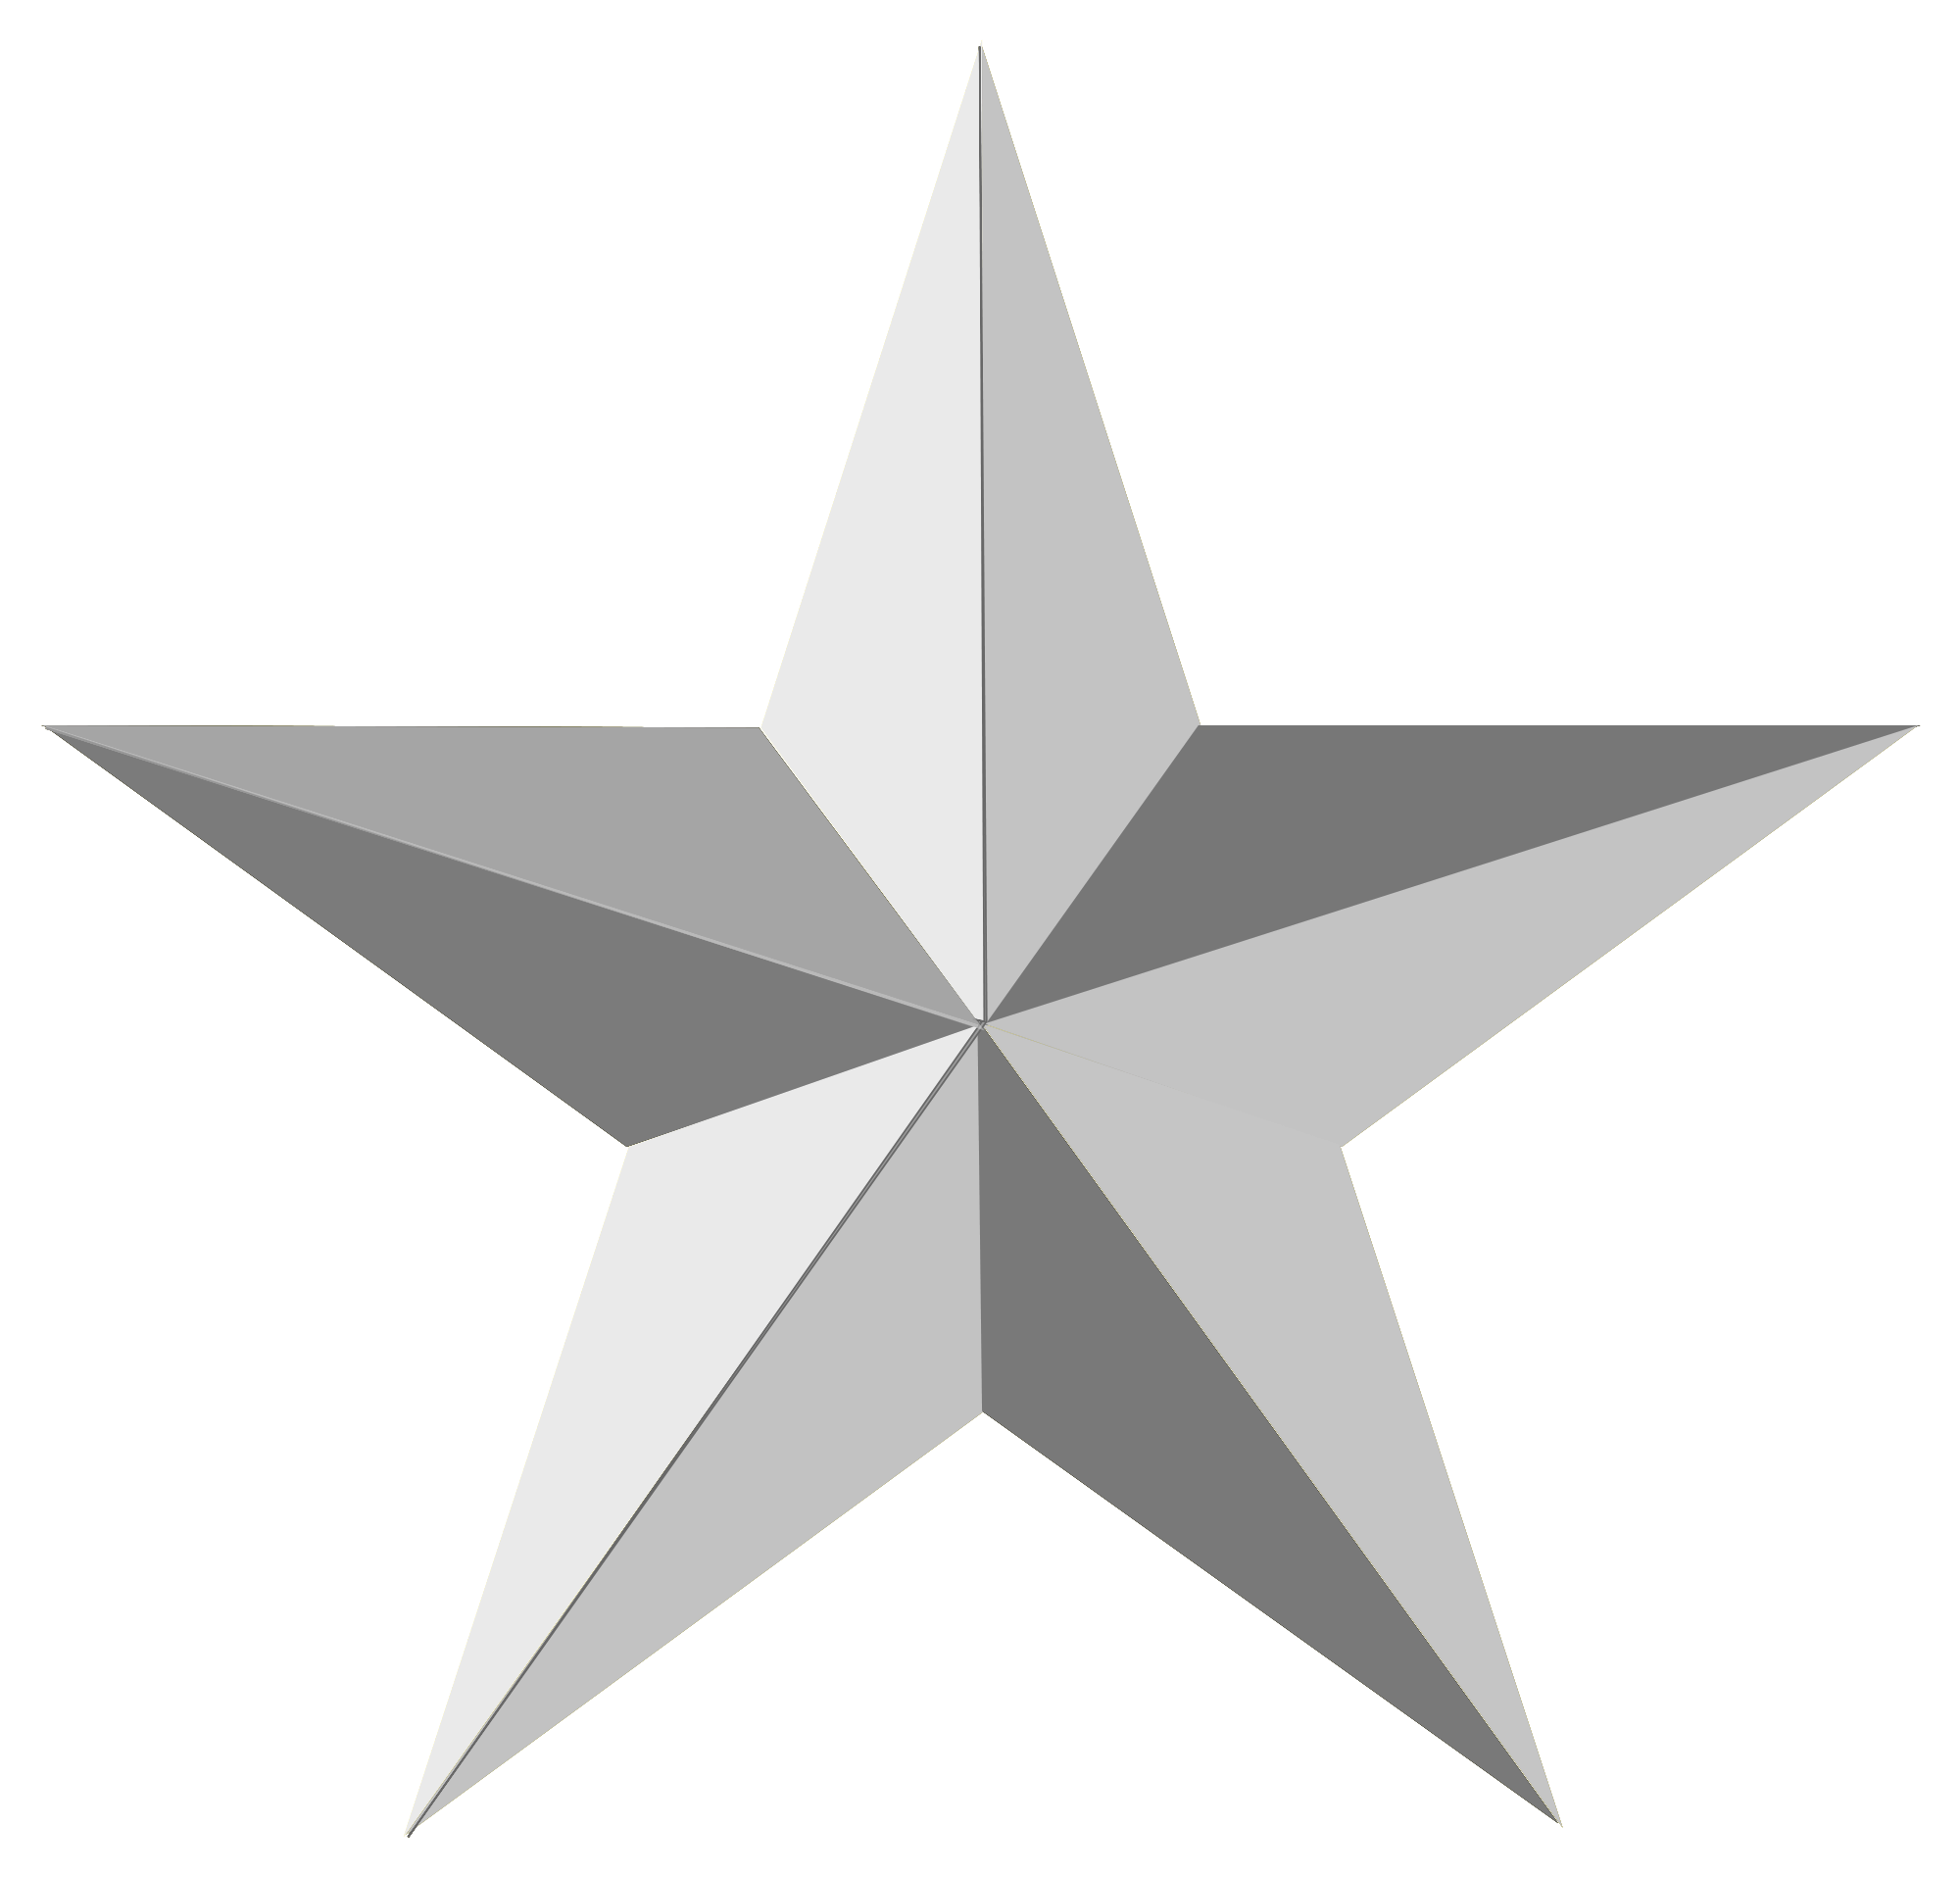 Star png transparent background. Gray picture